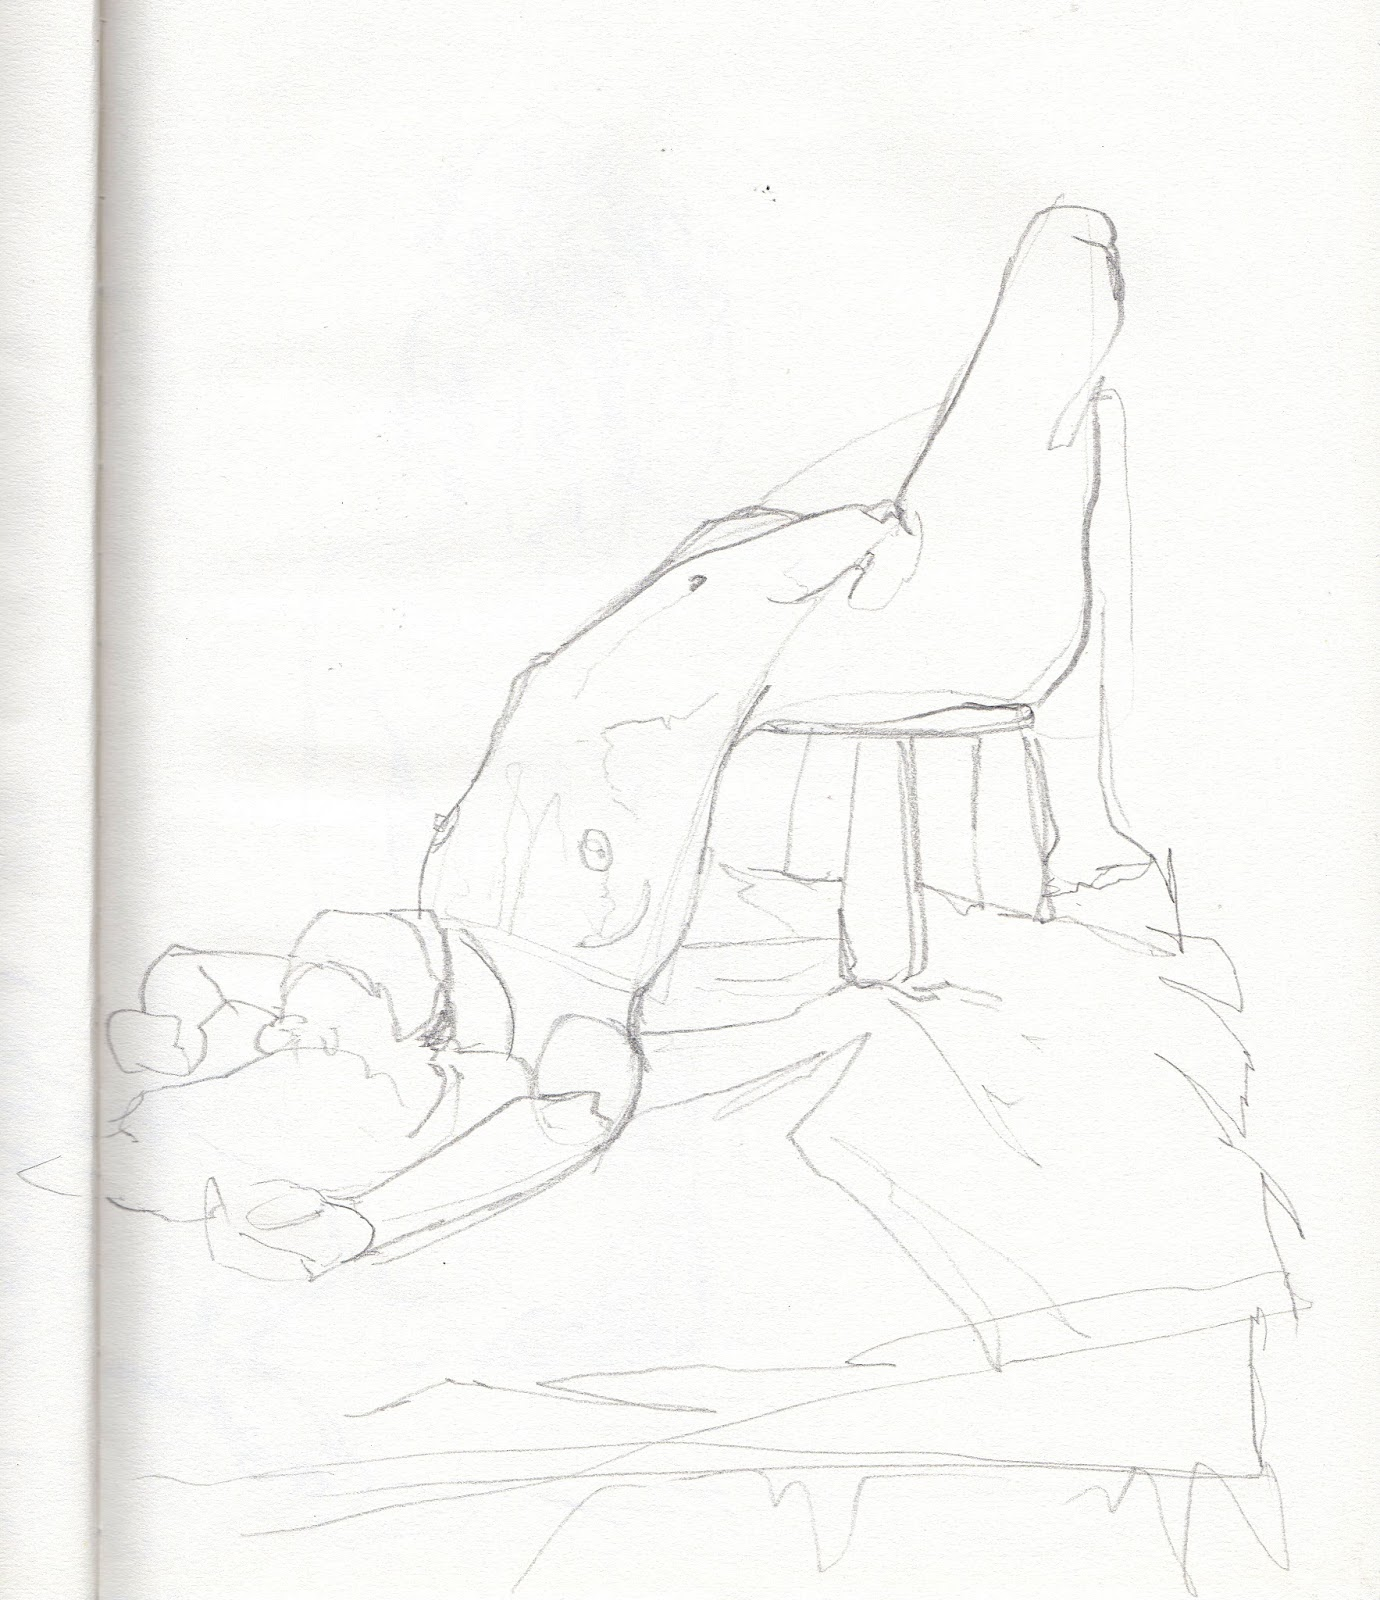 Tingrynade / croquis et recherches  - Page 15 Img15000084